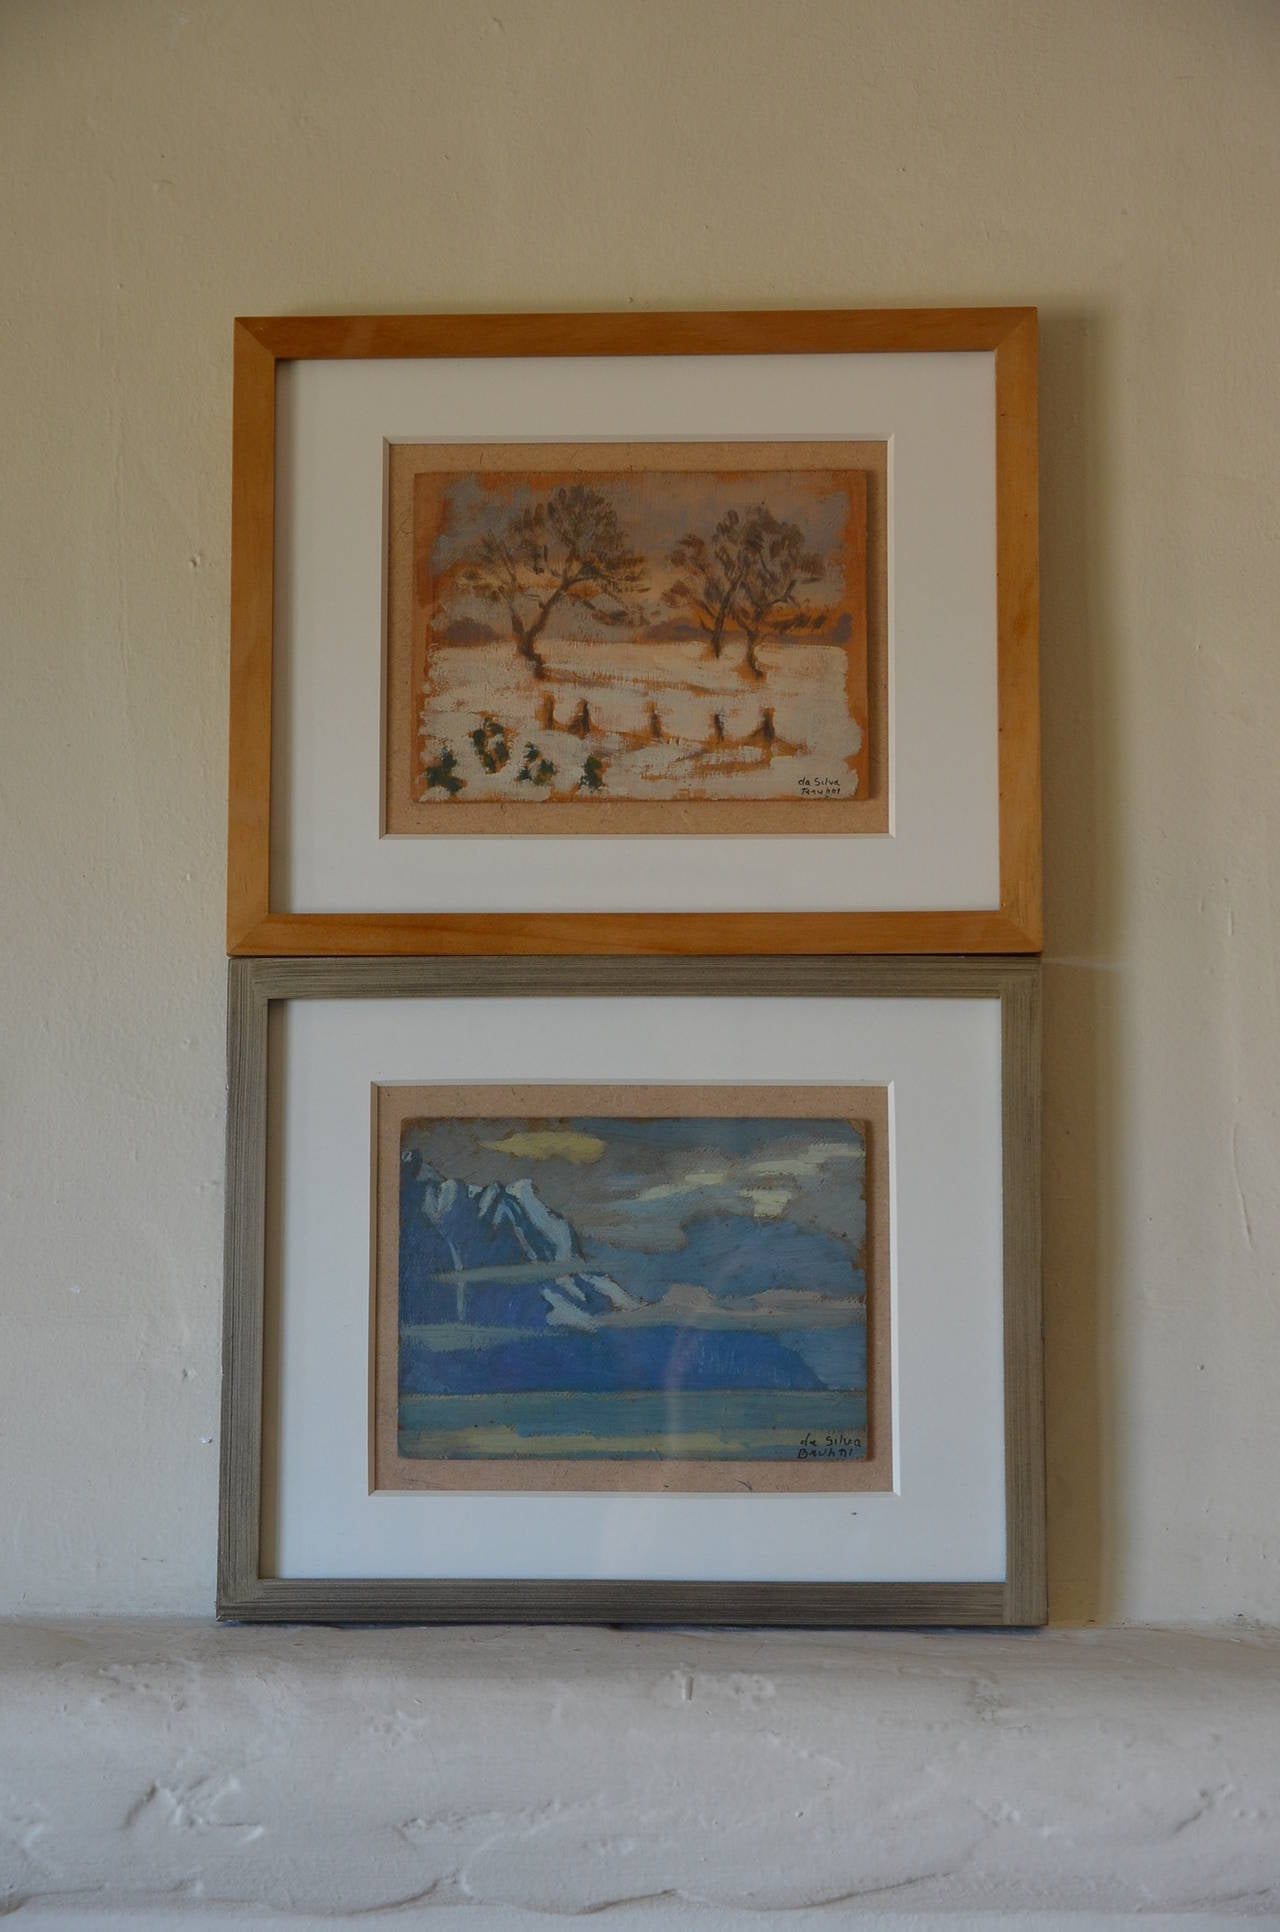 Rare Set of Two Framed Oil Paintings by Ivan da Silva Bruhns 2